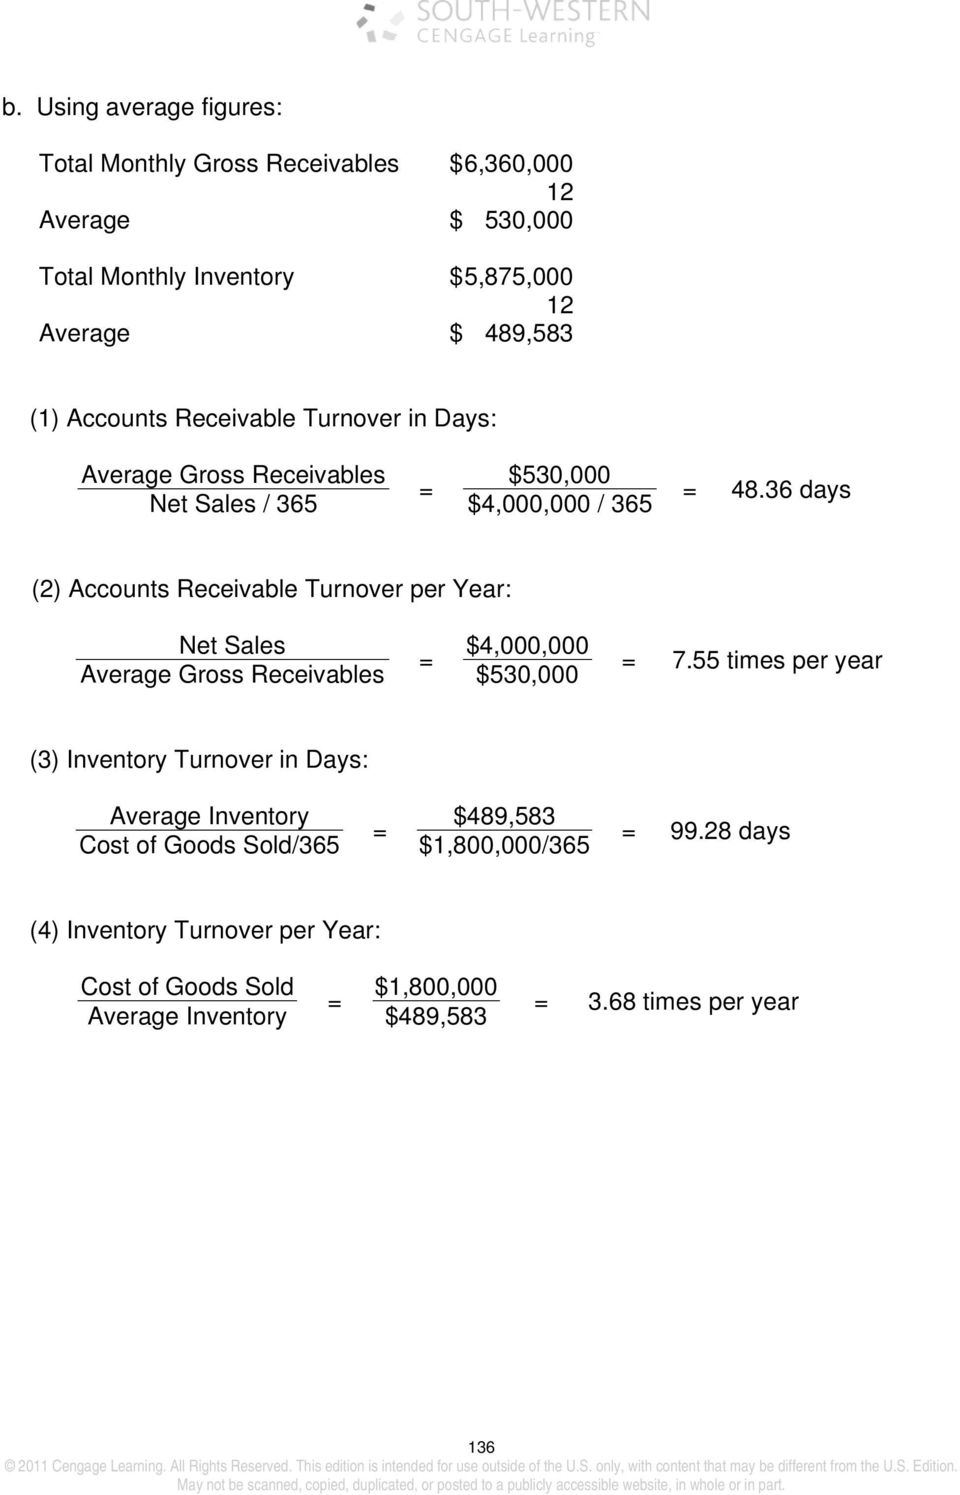 36 days (2) Accounts Receivable Turnover per Year: Net Sales $4,000,000 Average Gross Receivables $530,000 7.